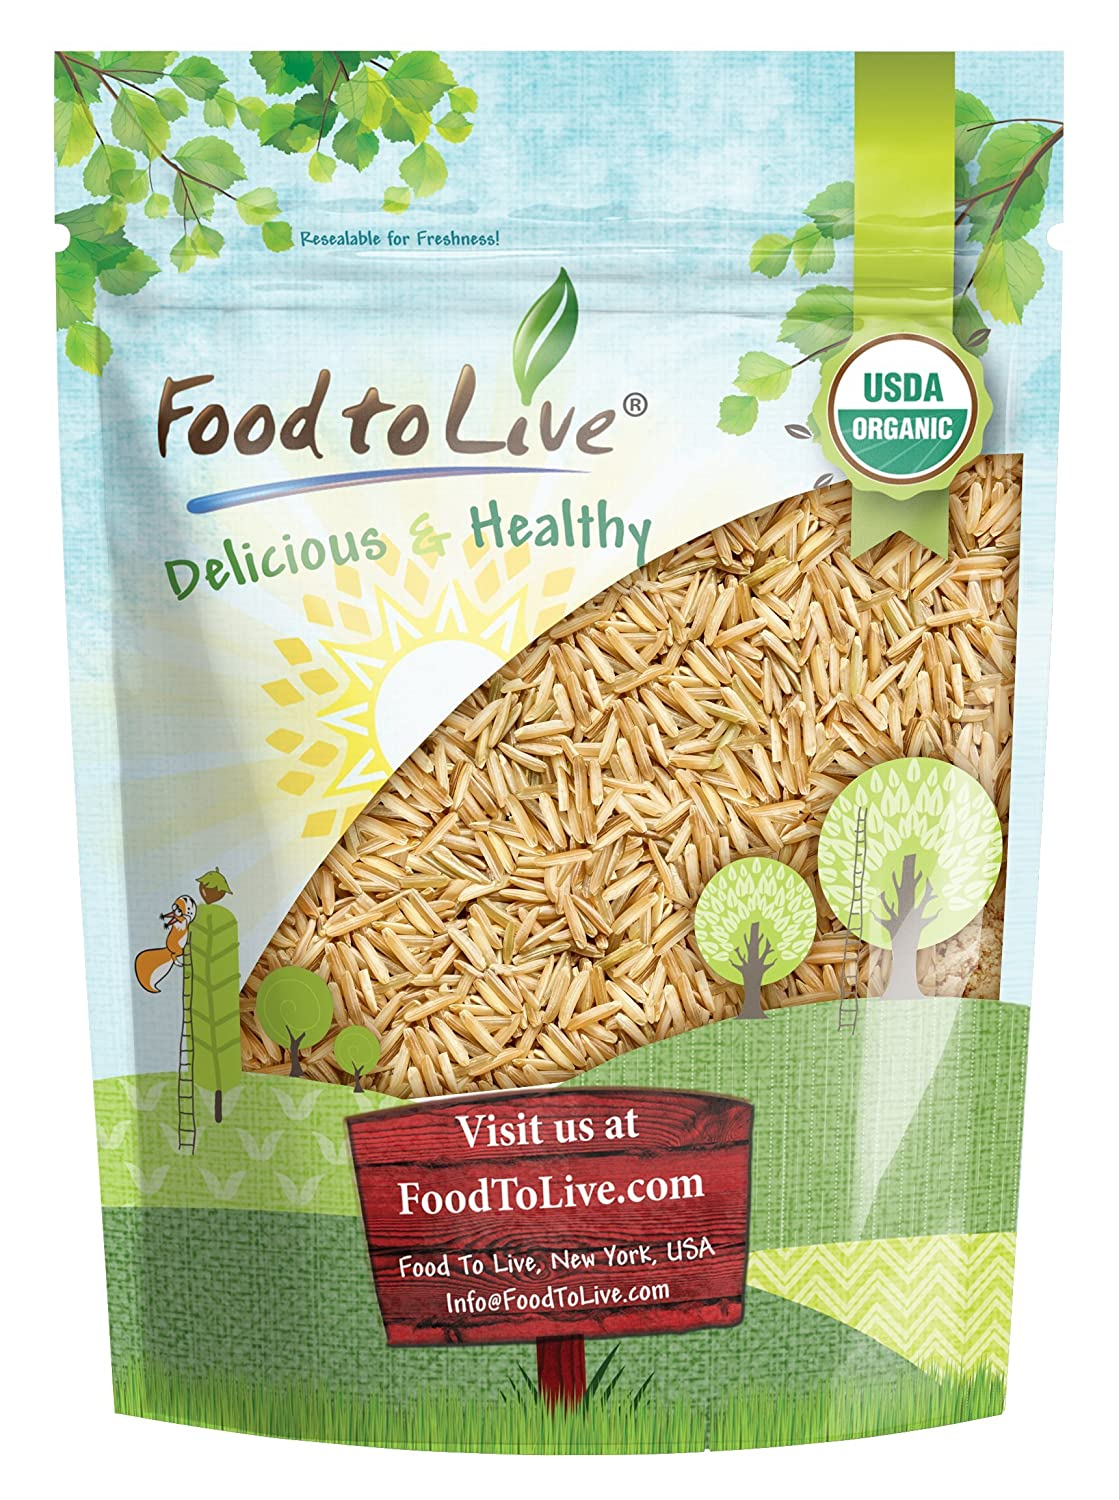 How many calories in 1 2 cup cooked brown basmati rice have arsenic